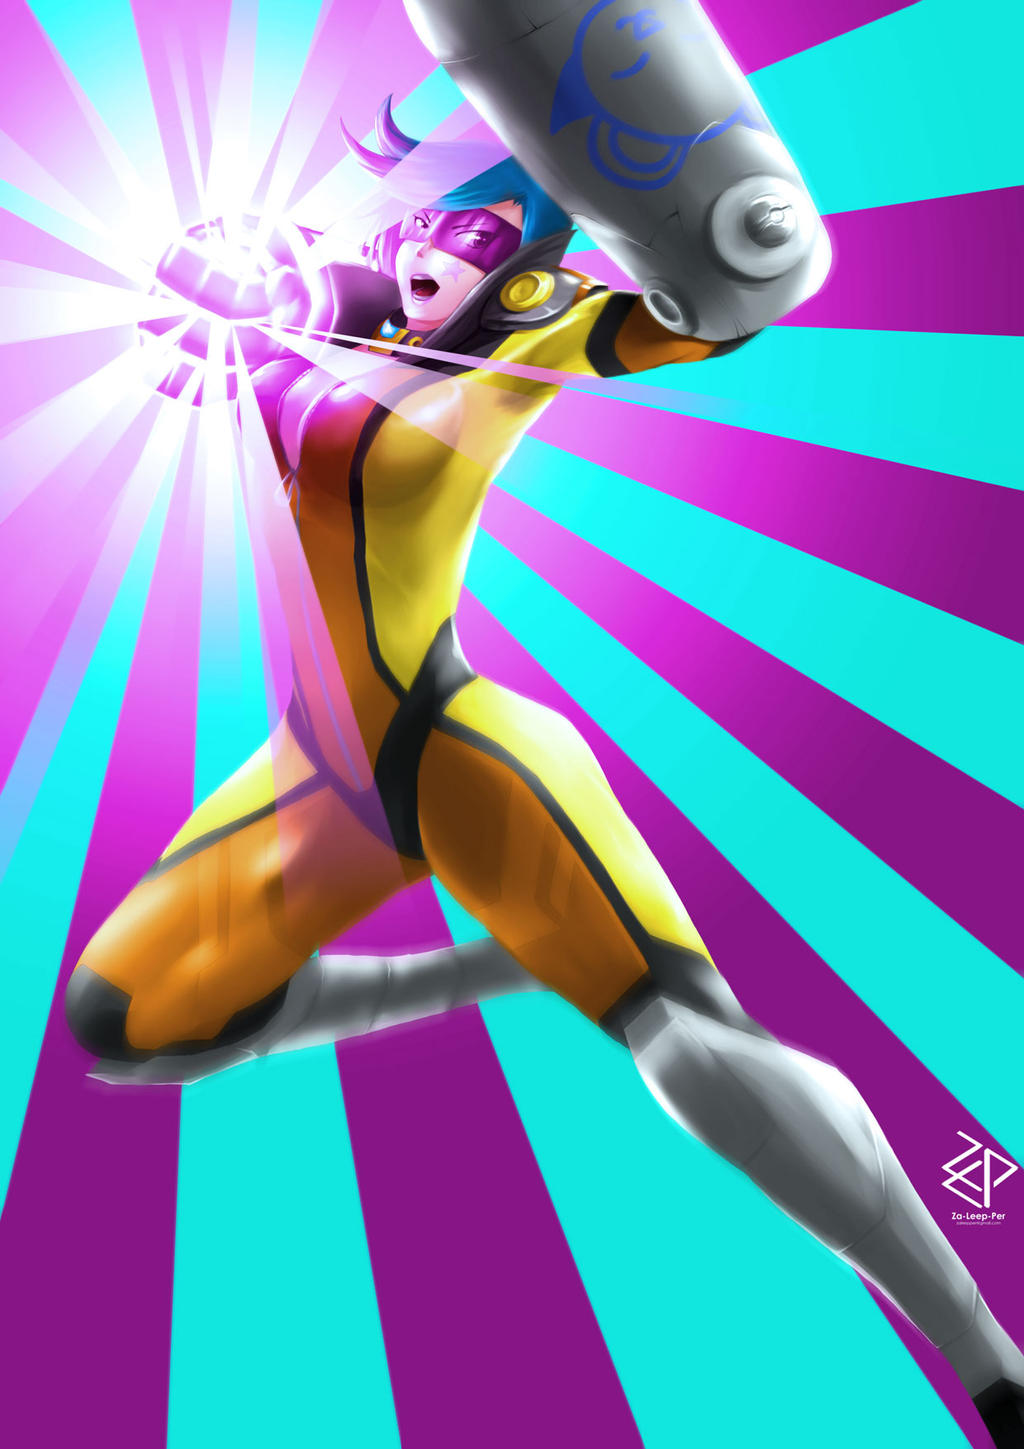 Neon Strike Vi by Za-Leep-Per on DeviantArt